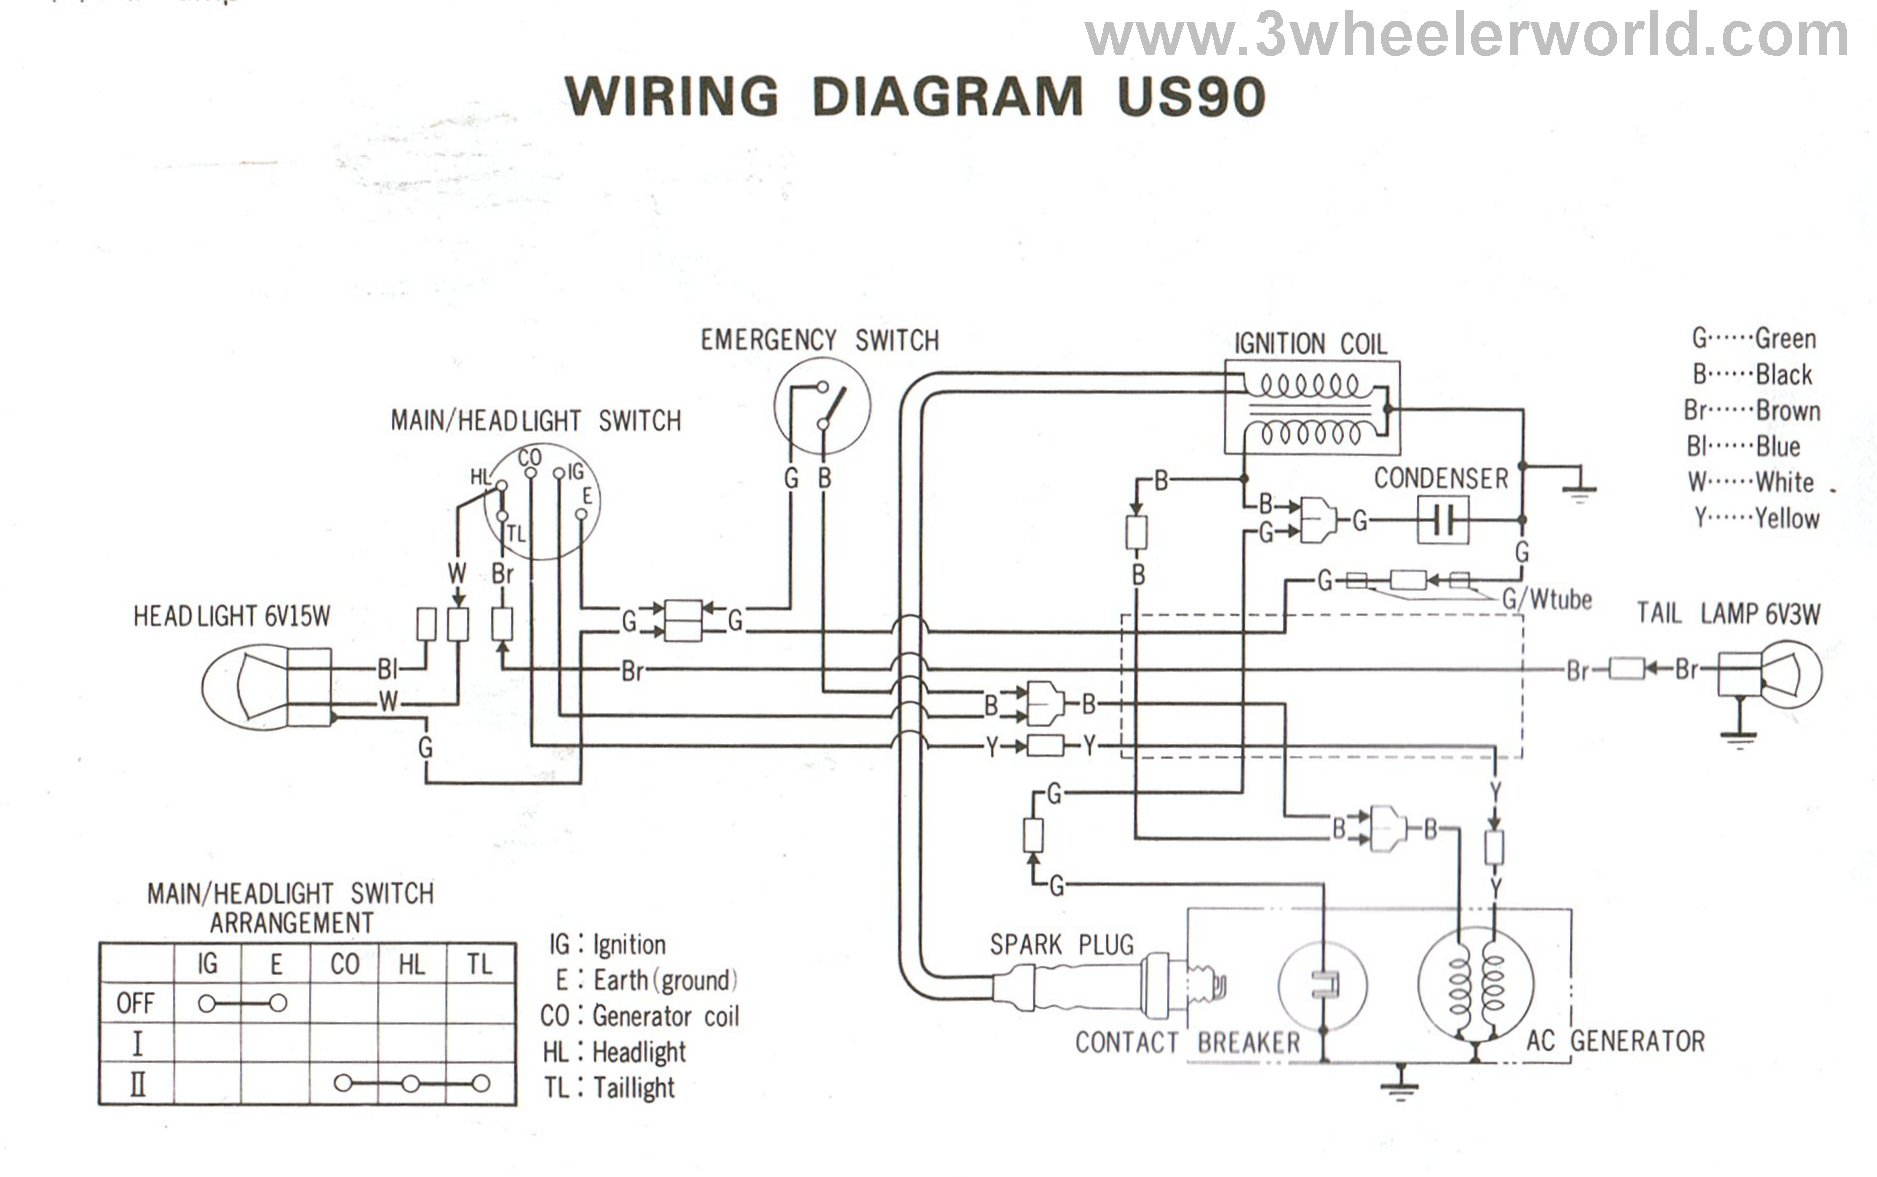 Dinli Beast 90 Wire Diagram FULL HD Version Wire Diagram - ER-DIAGRAM .ROMANIATV.ITDiagram Database And Images - romaniatv.it